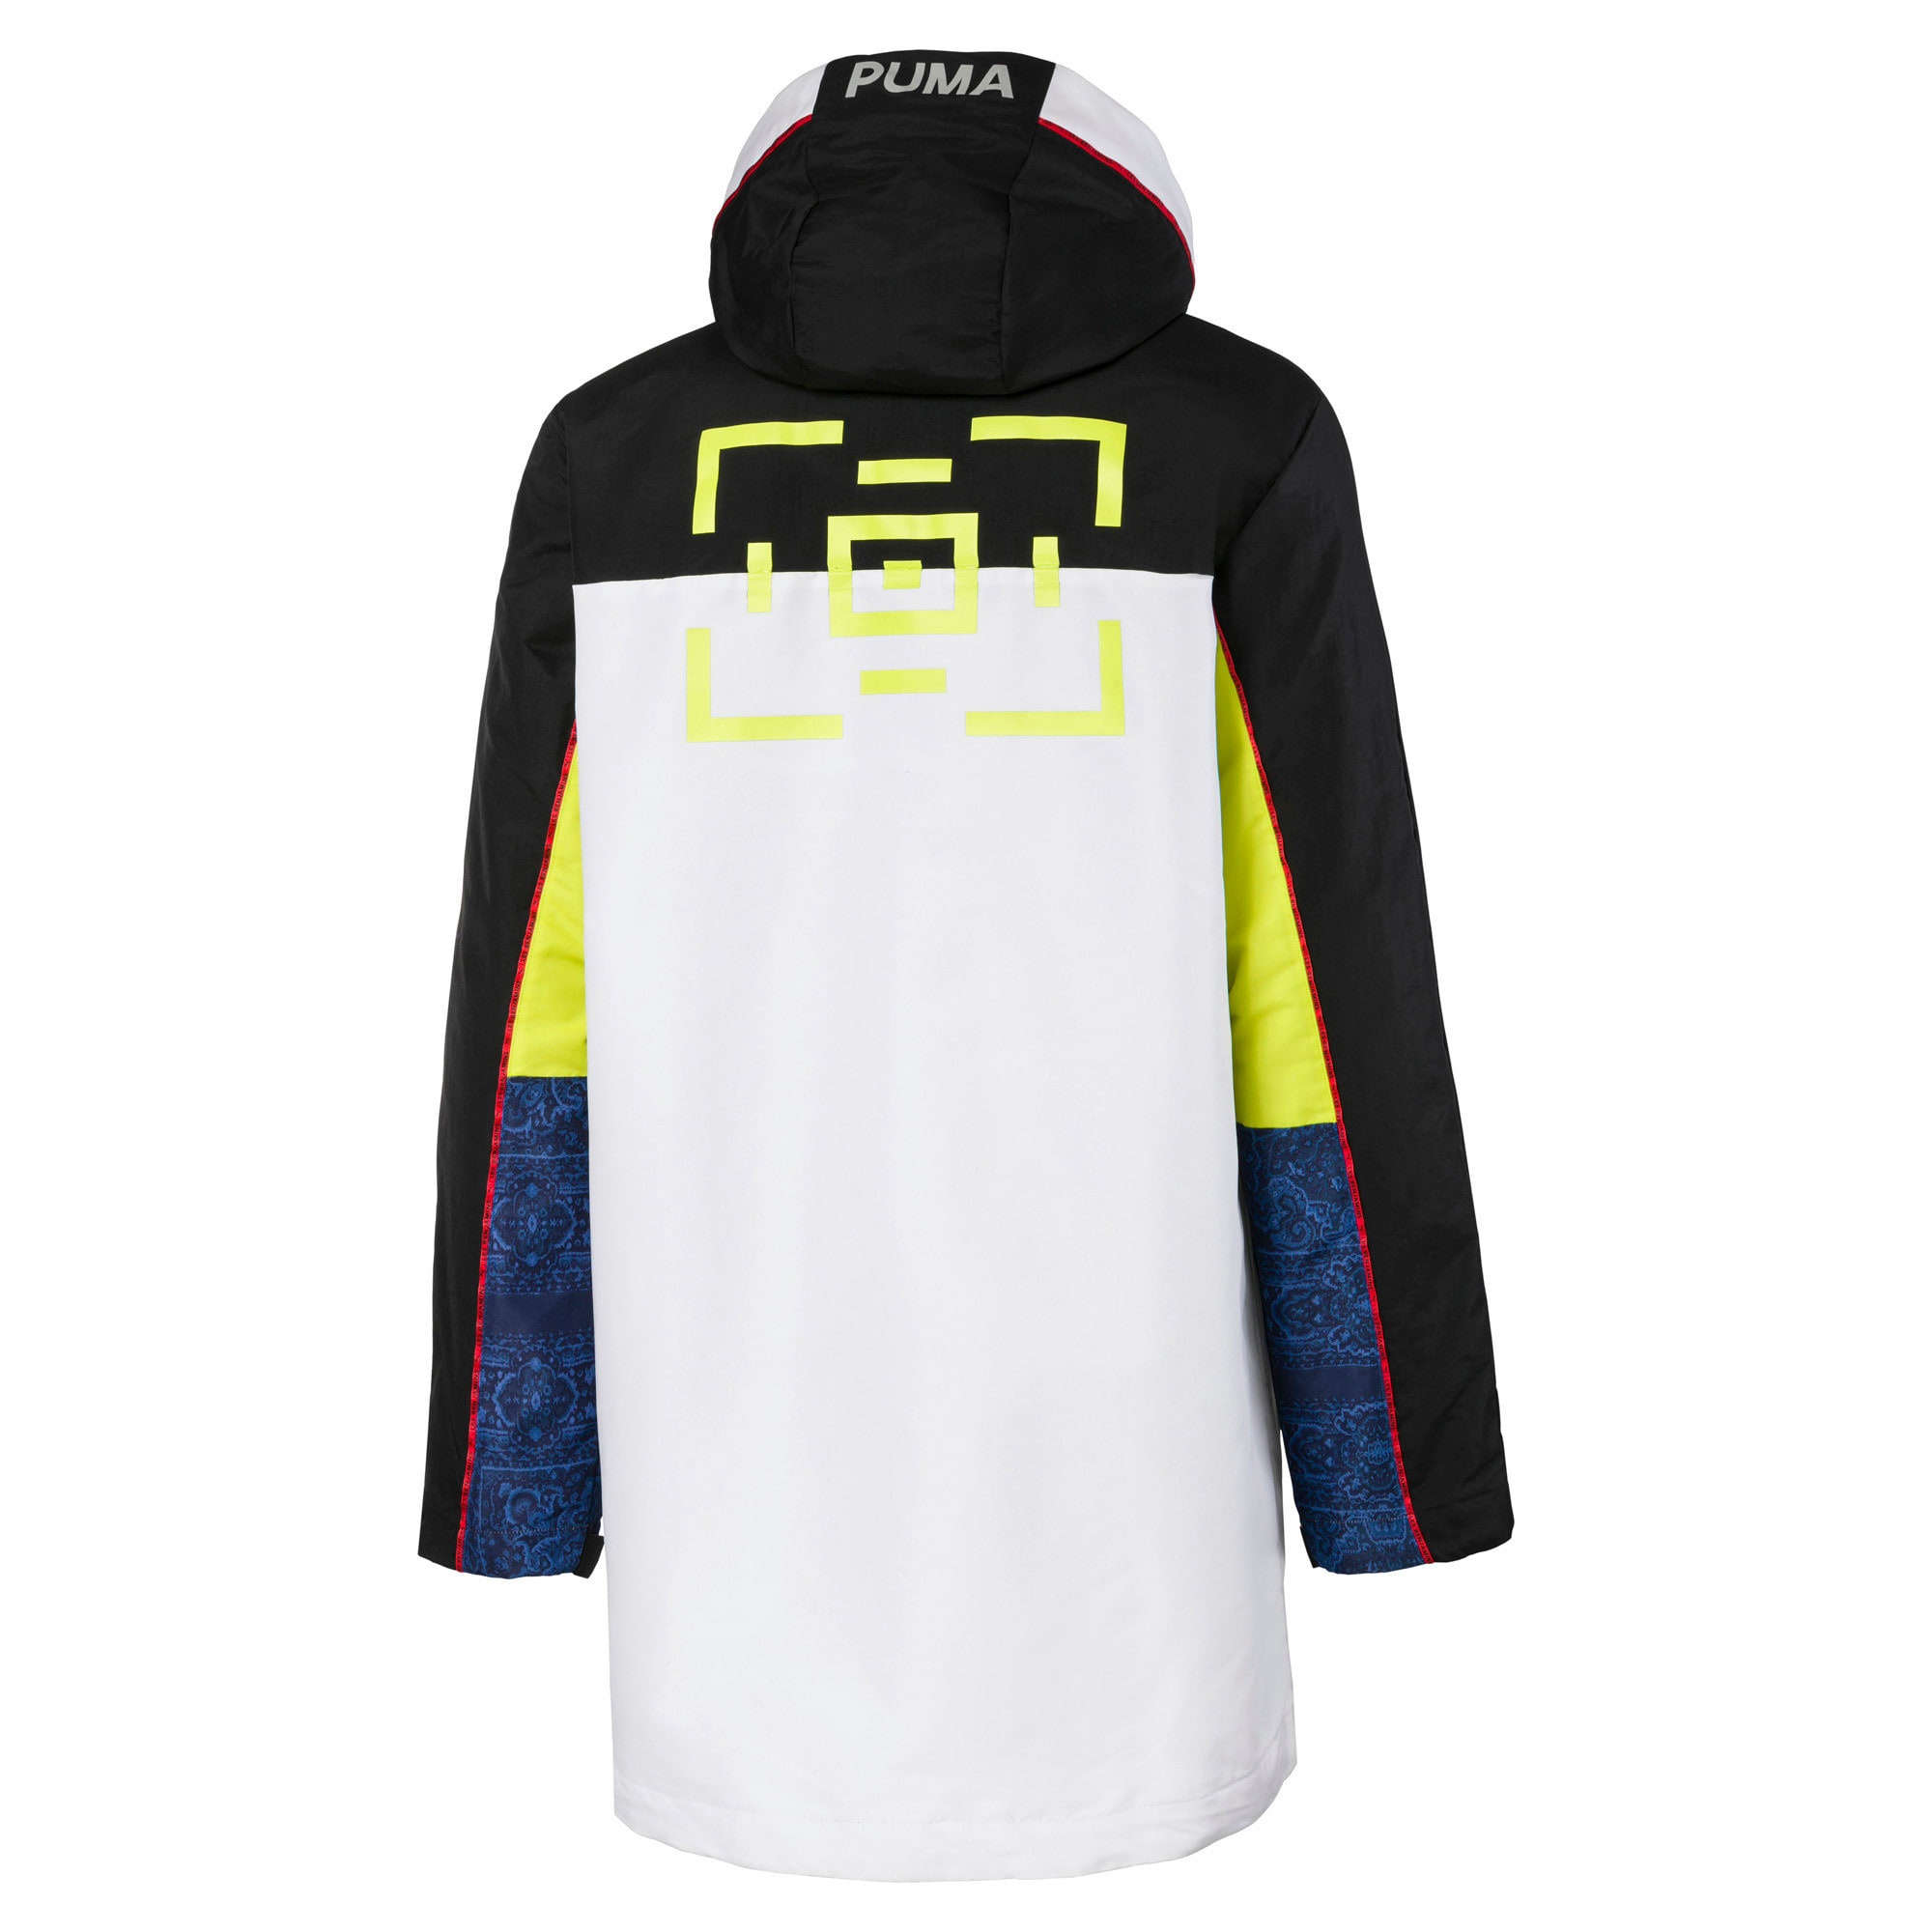 Thumbnail 5 of PUMA x LES BENJAMINS Men's Storm Jacket, Puma White, medium